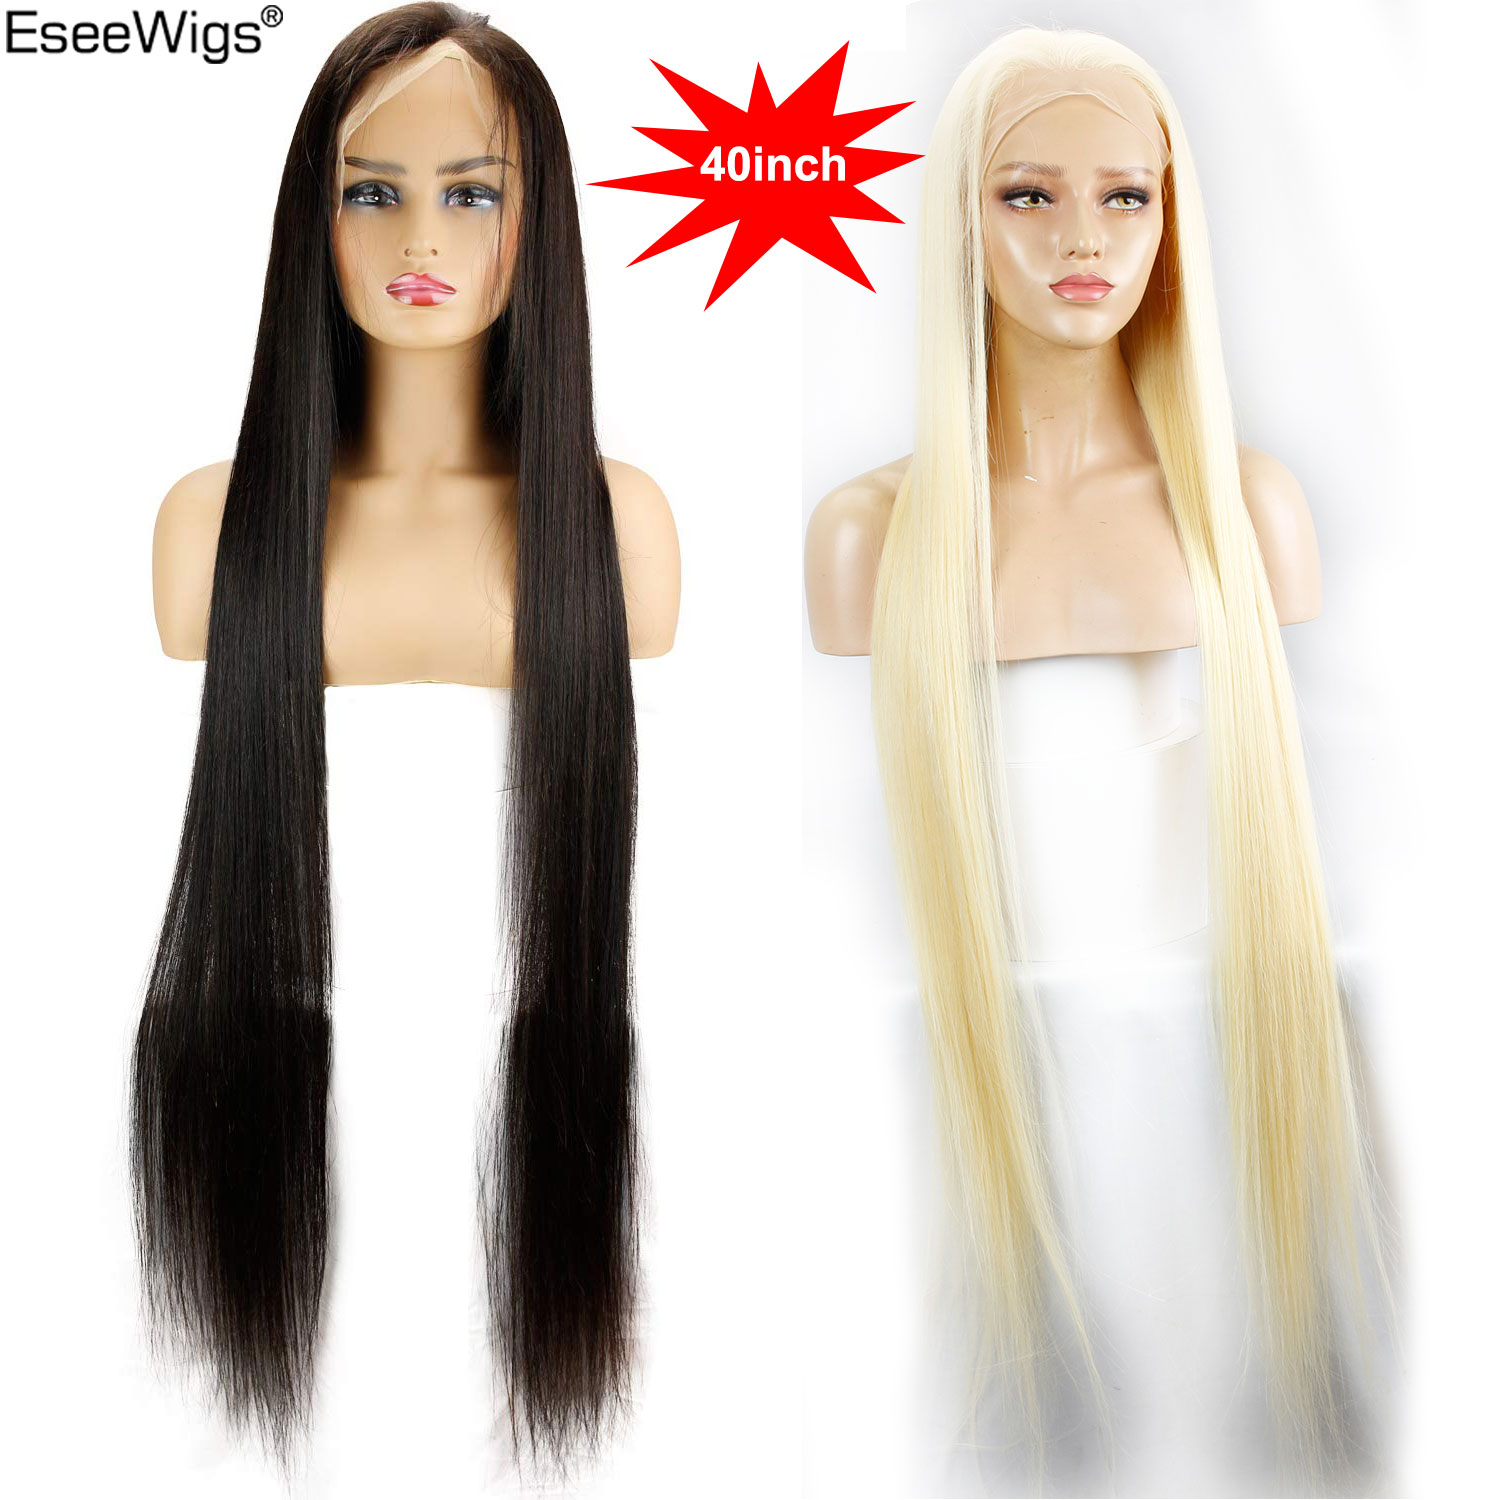 Eseewigs 28 30 34 36 38 40 inch Long Hair Brazilian Virgin Human Hair Full Lace Wigs Silk Straight 613 Color for Women image